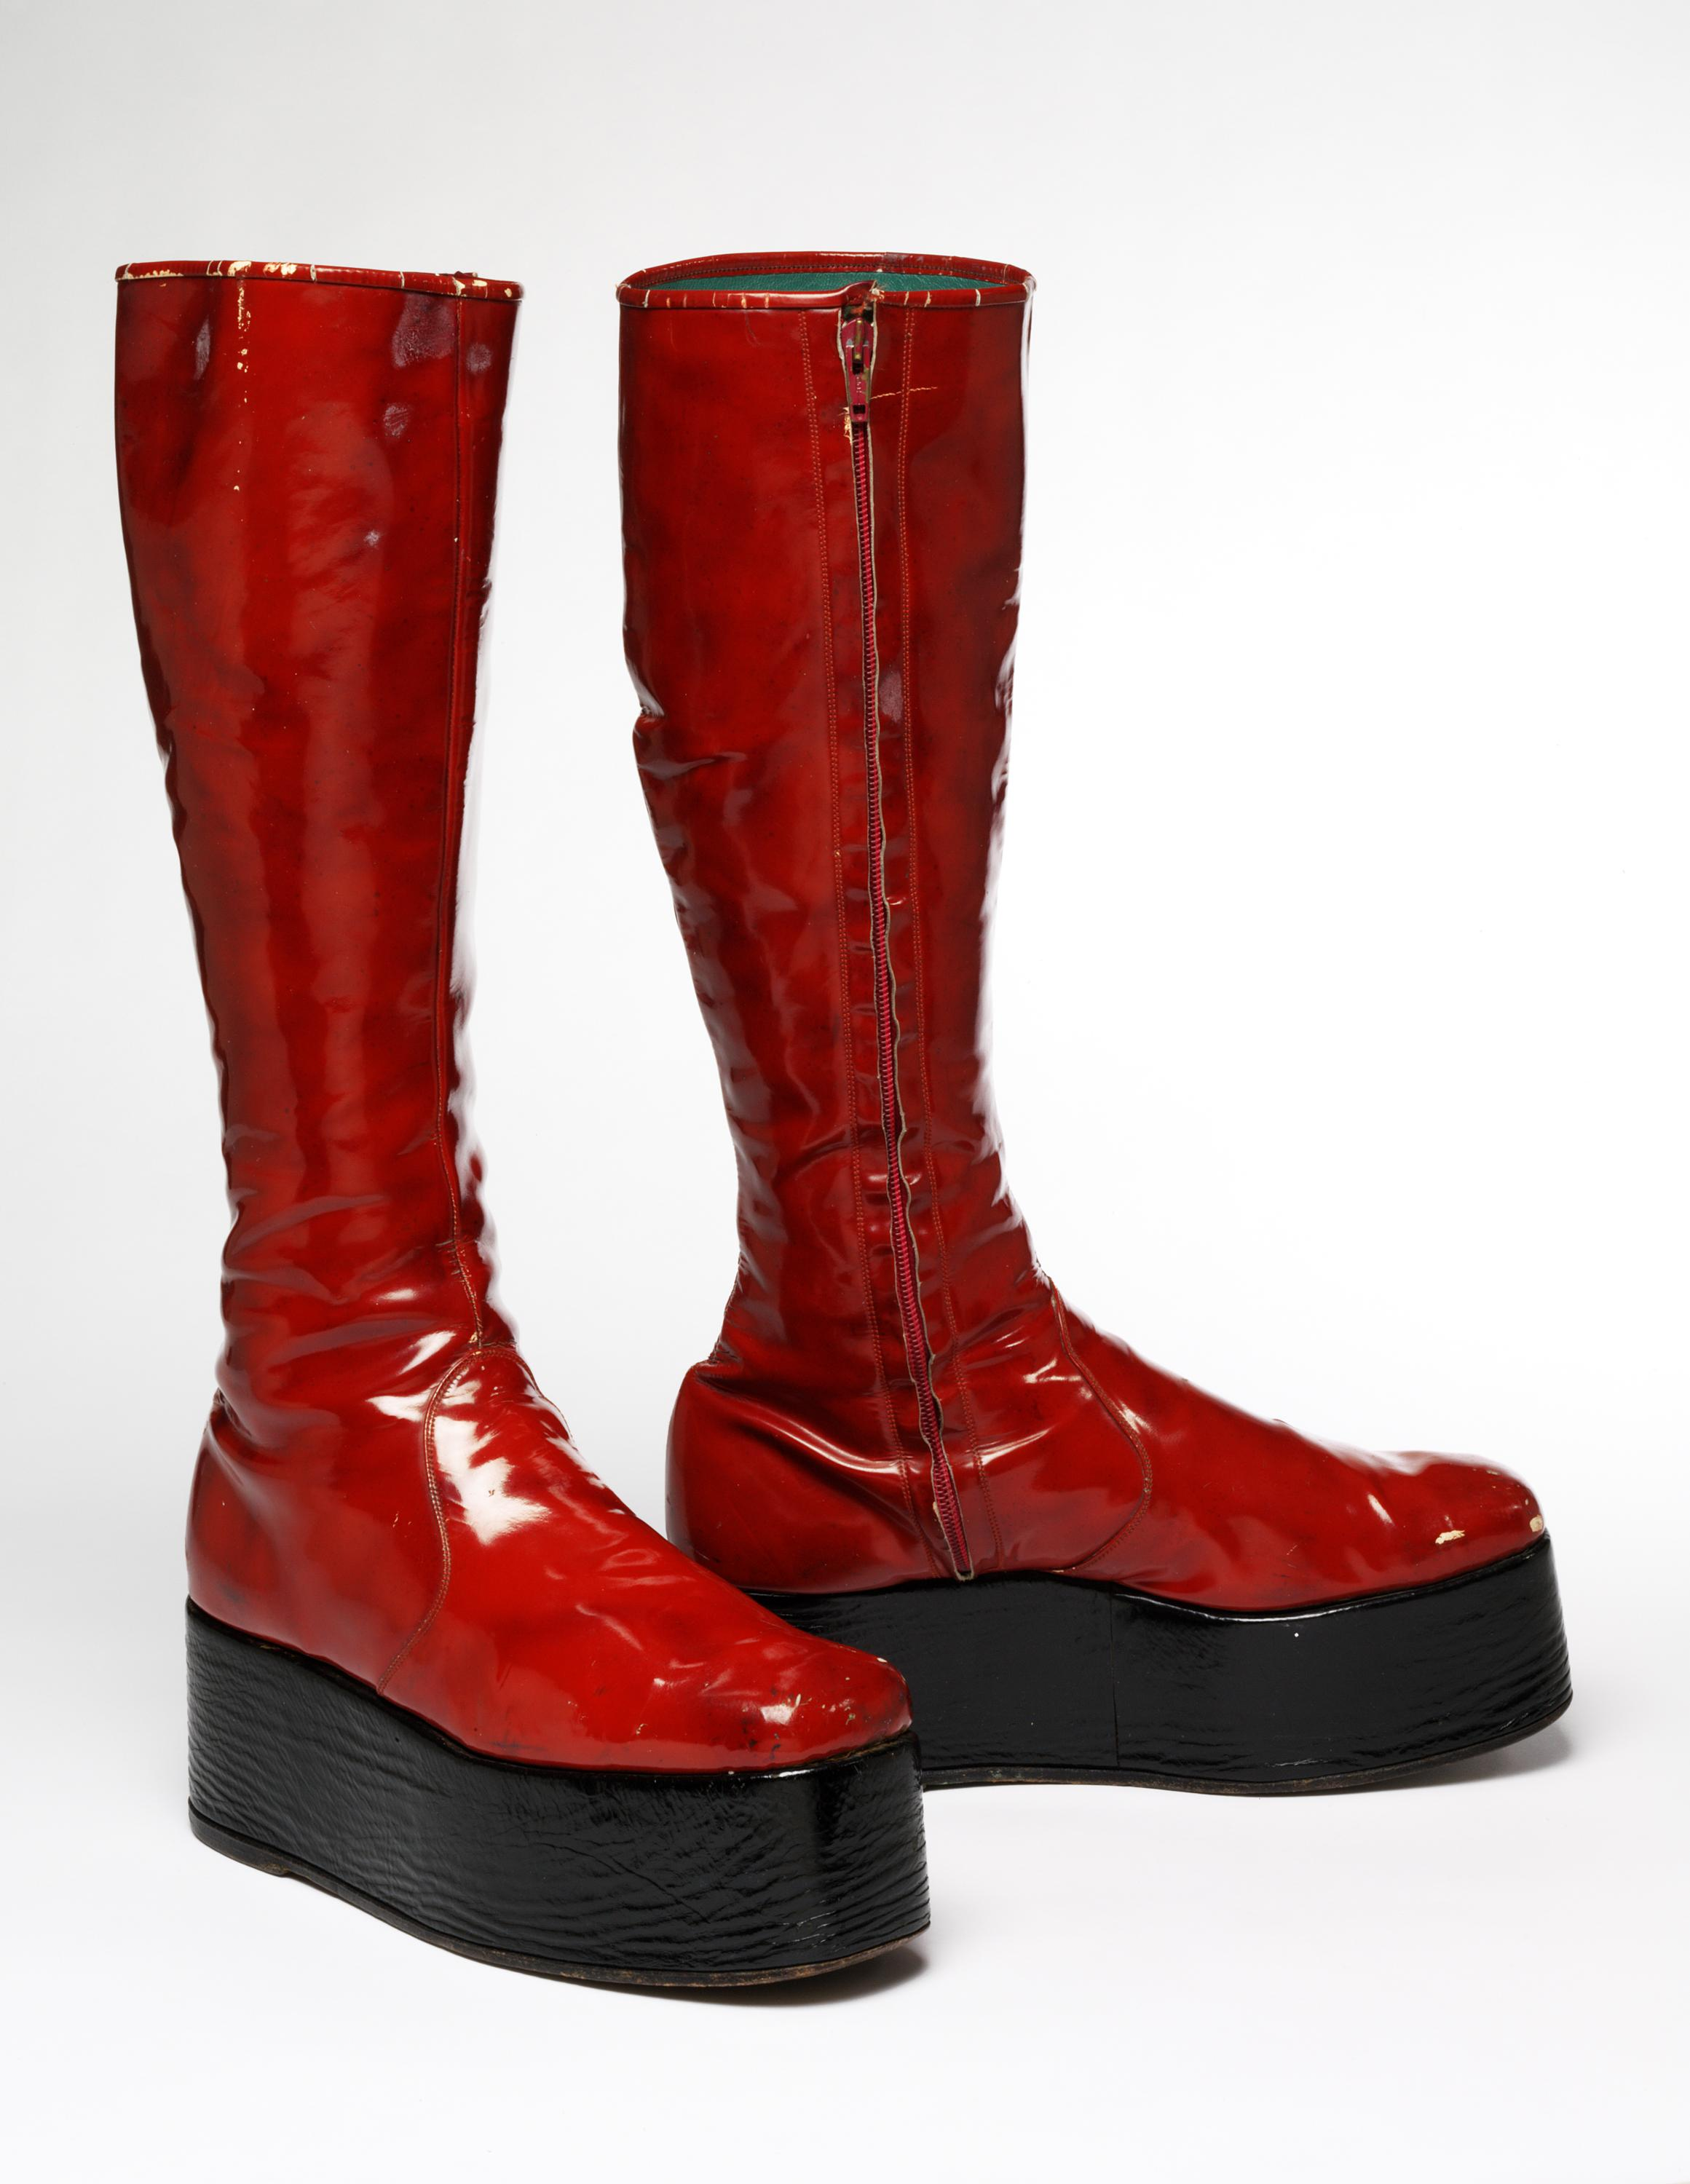 Red, chunky, high-top platform boots stand erect in a white room.